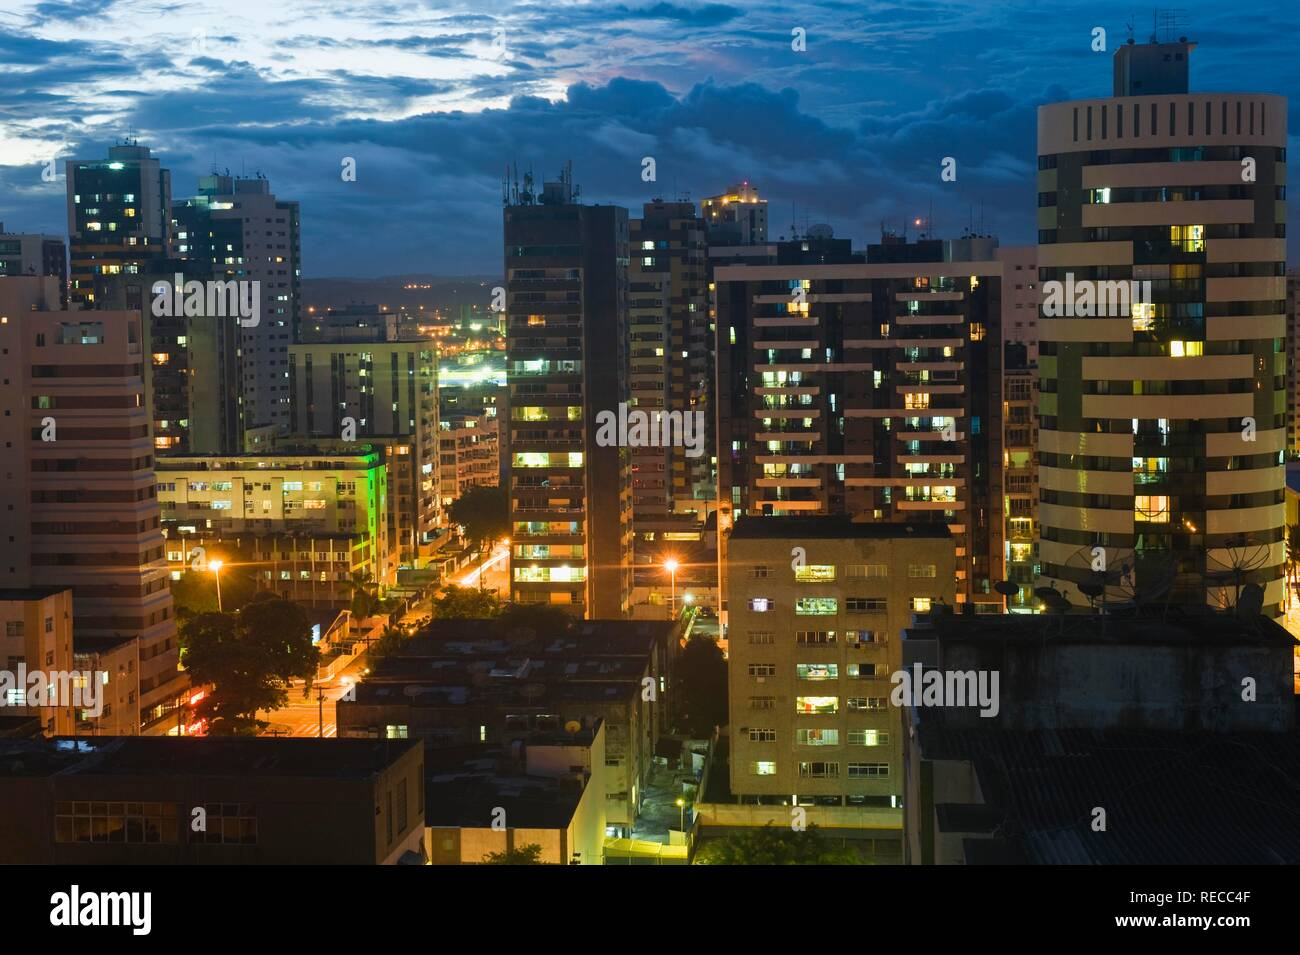 Recife skyline at night, Pernambuco state, Brazil, South America - Stock Image